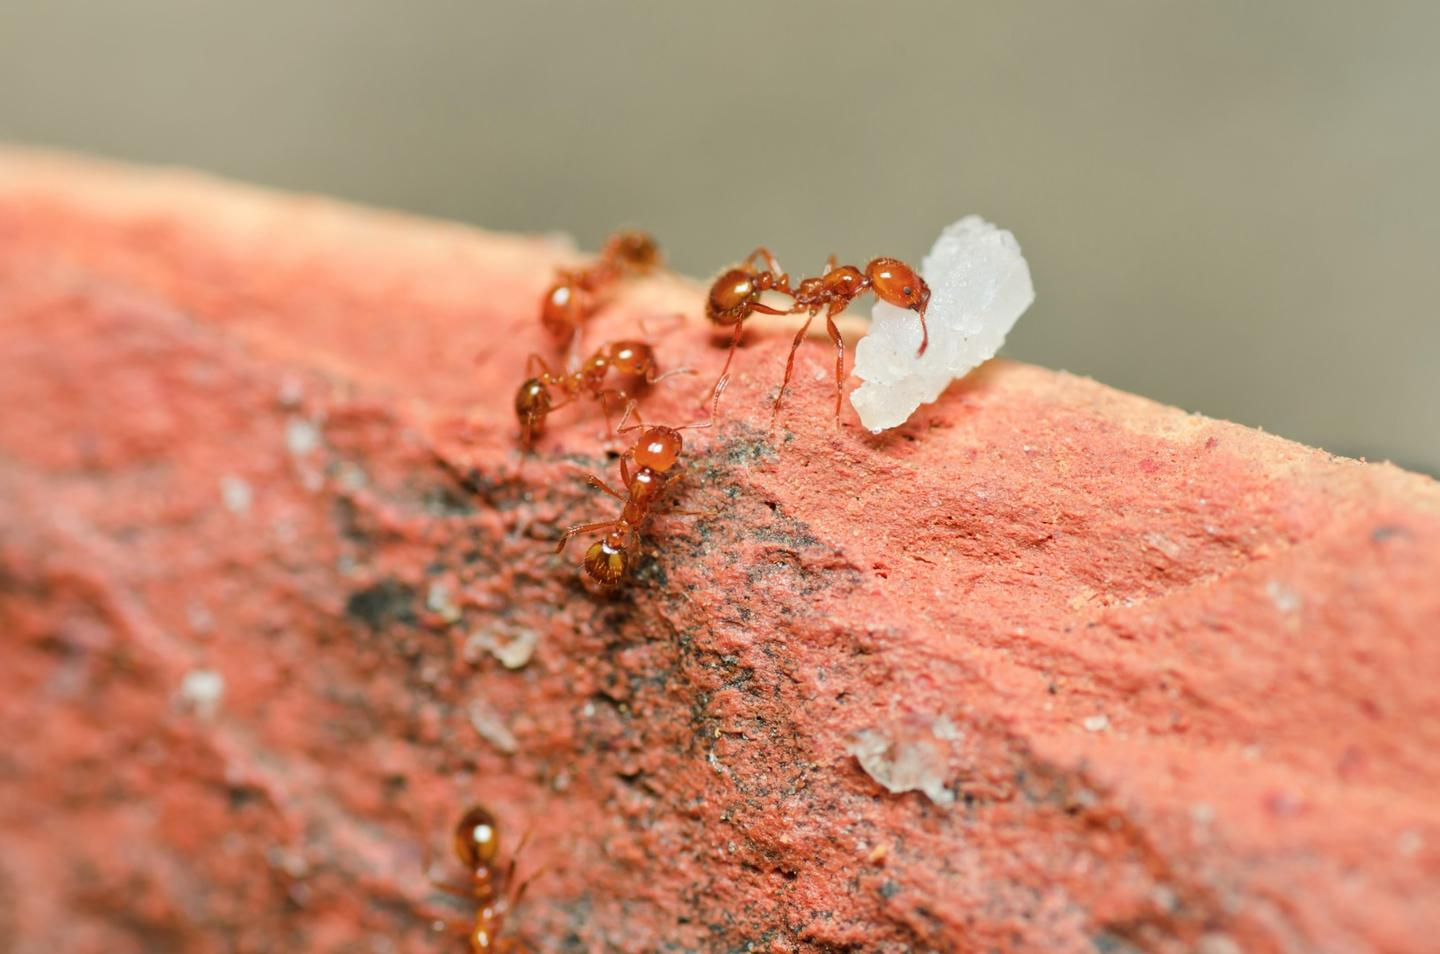 Researchers have discovered a toxic compound in fire ant venom that could inspire new treatments for psoriasis